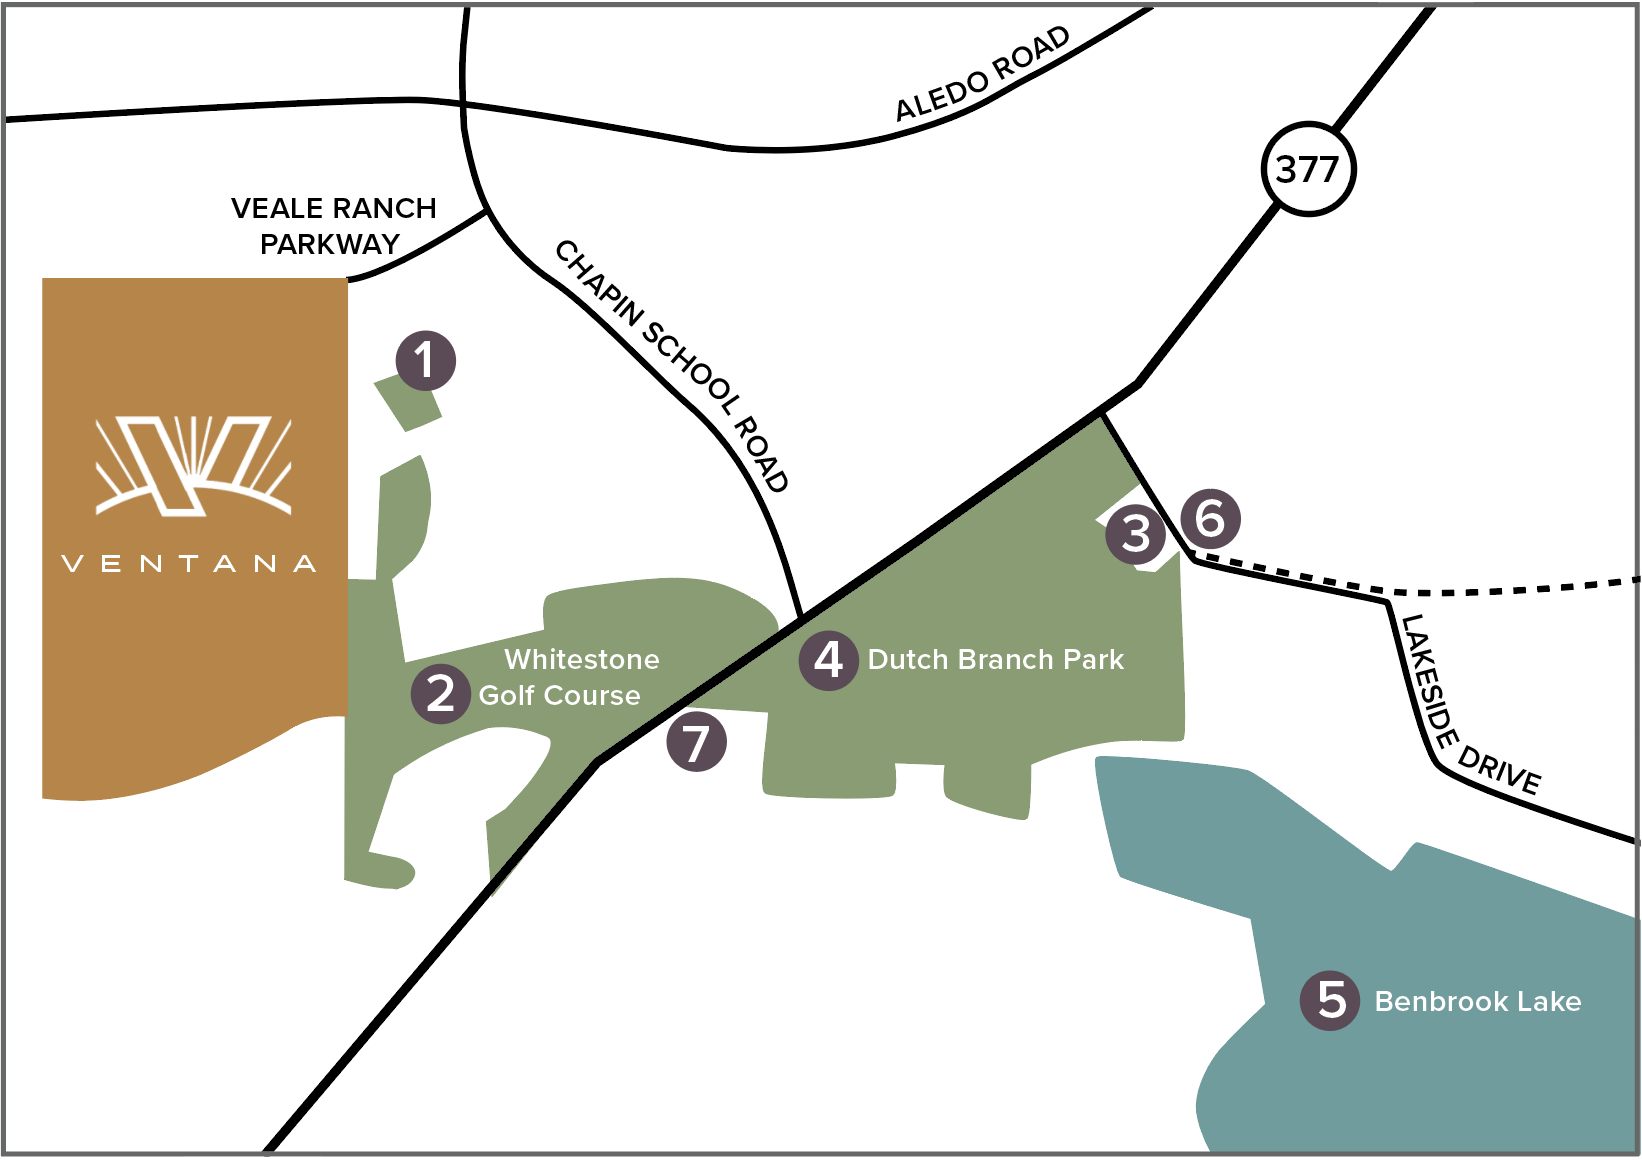 area amenities map for ventana fort worth